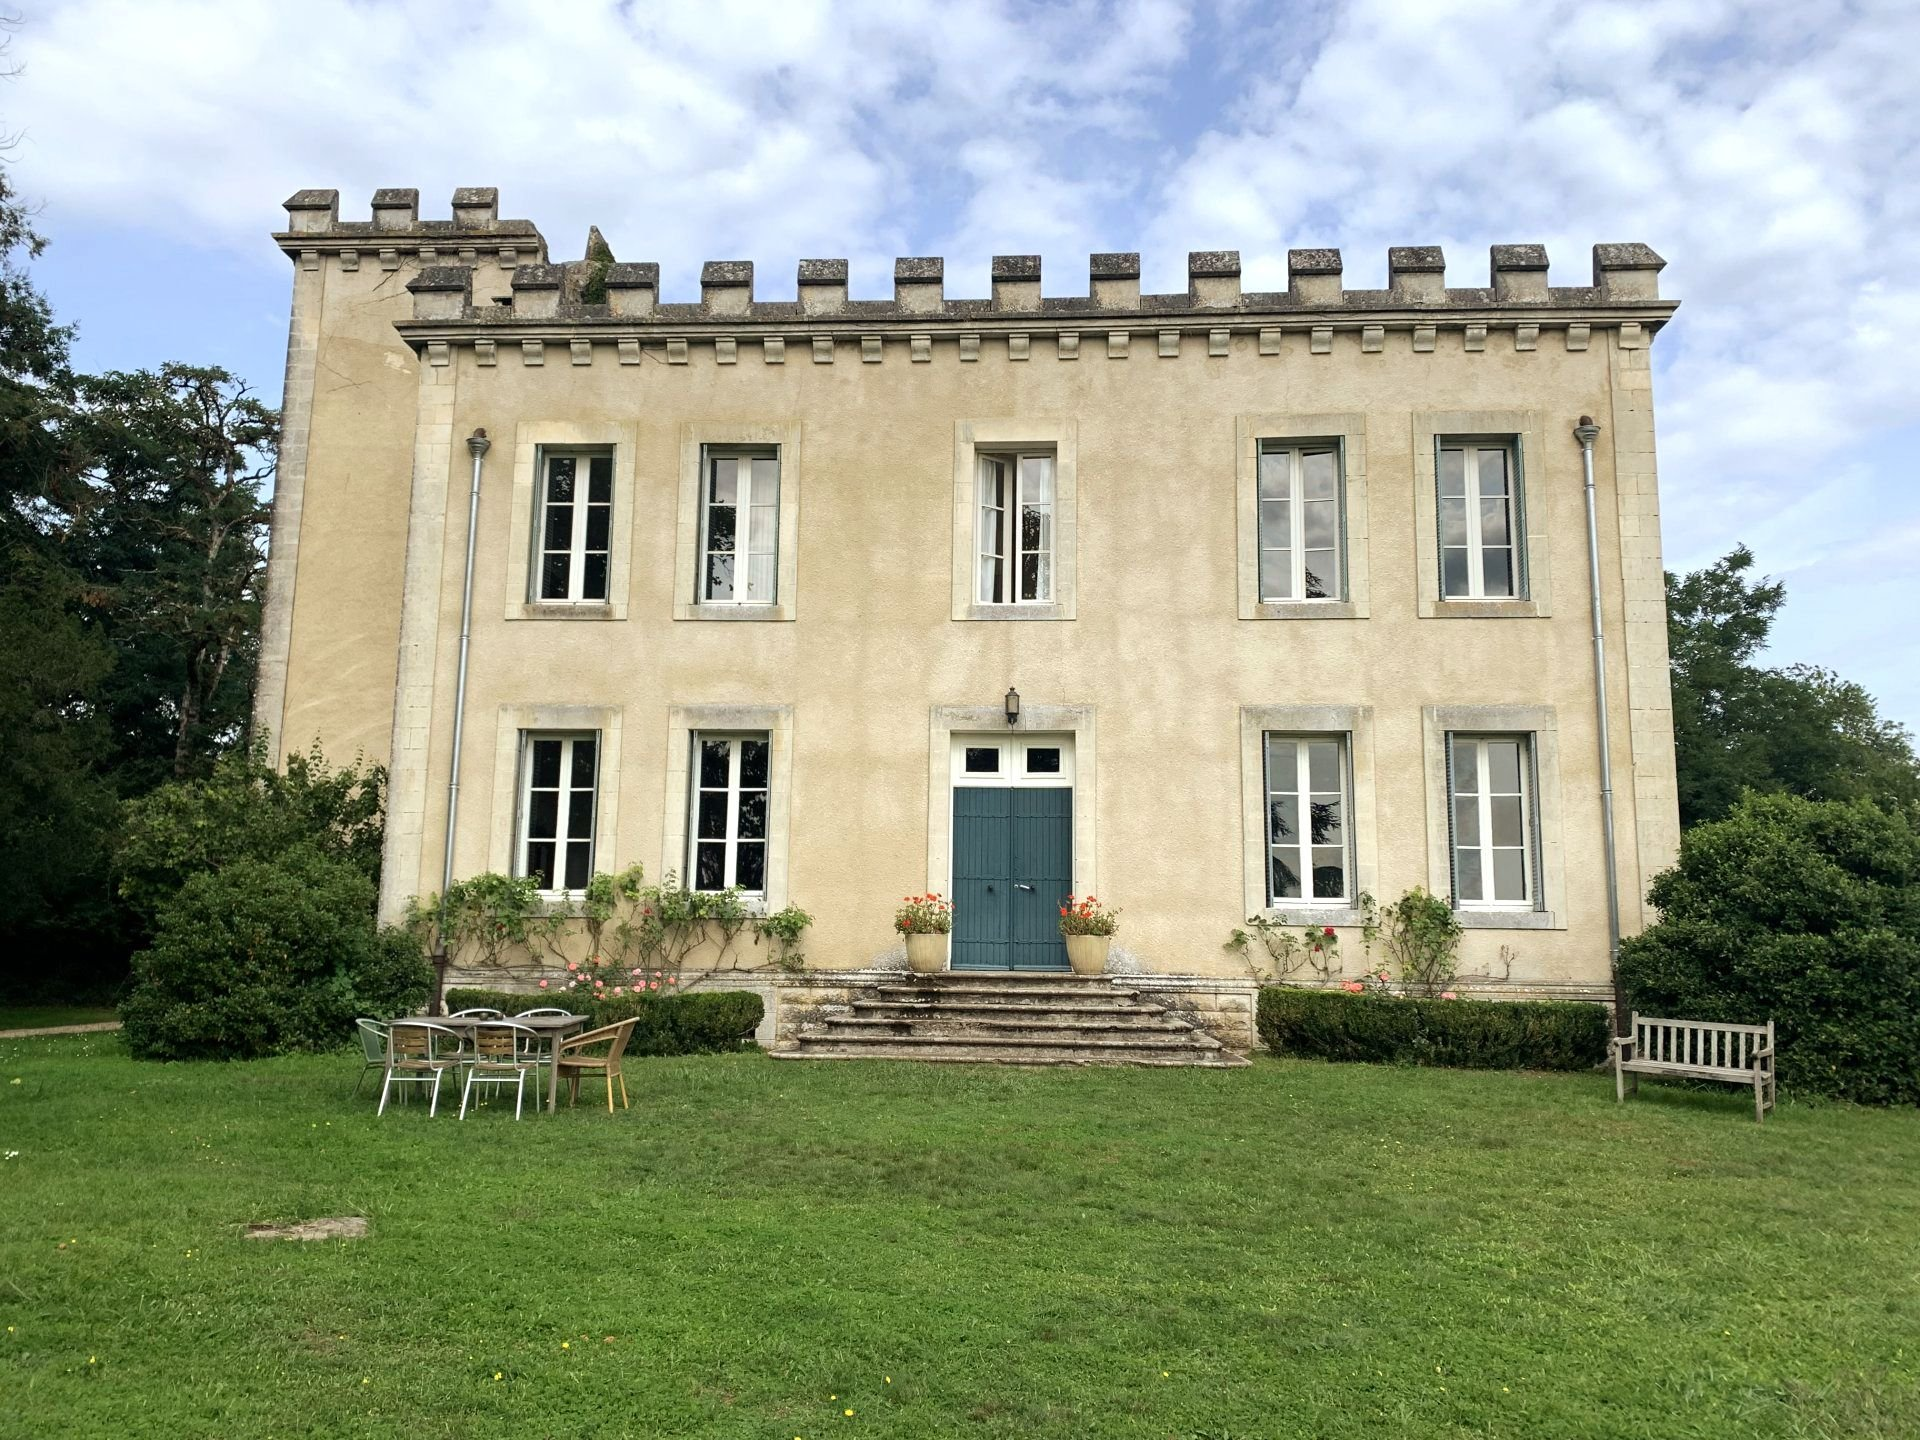 Stunning Chateau With Detached Lodge Dwelling Offering Fabulous Income Potential